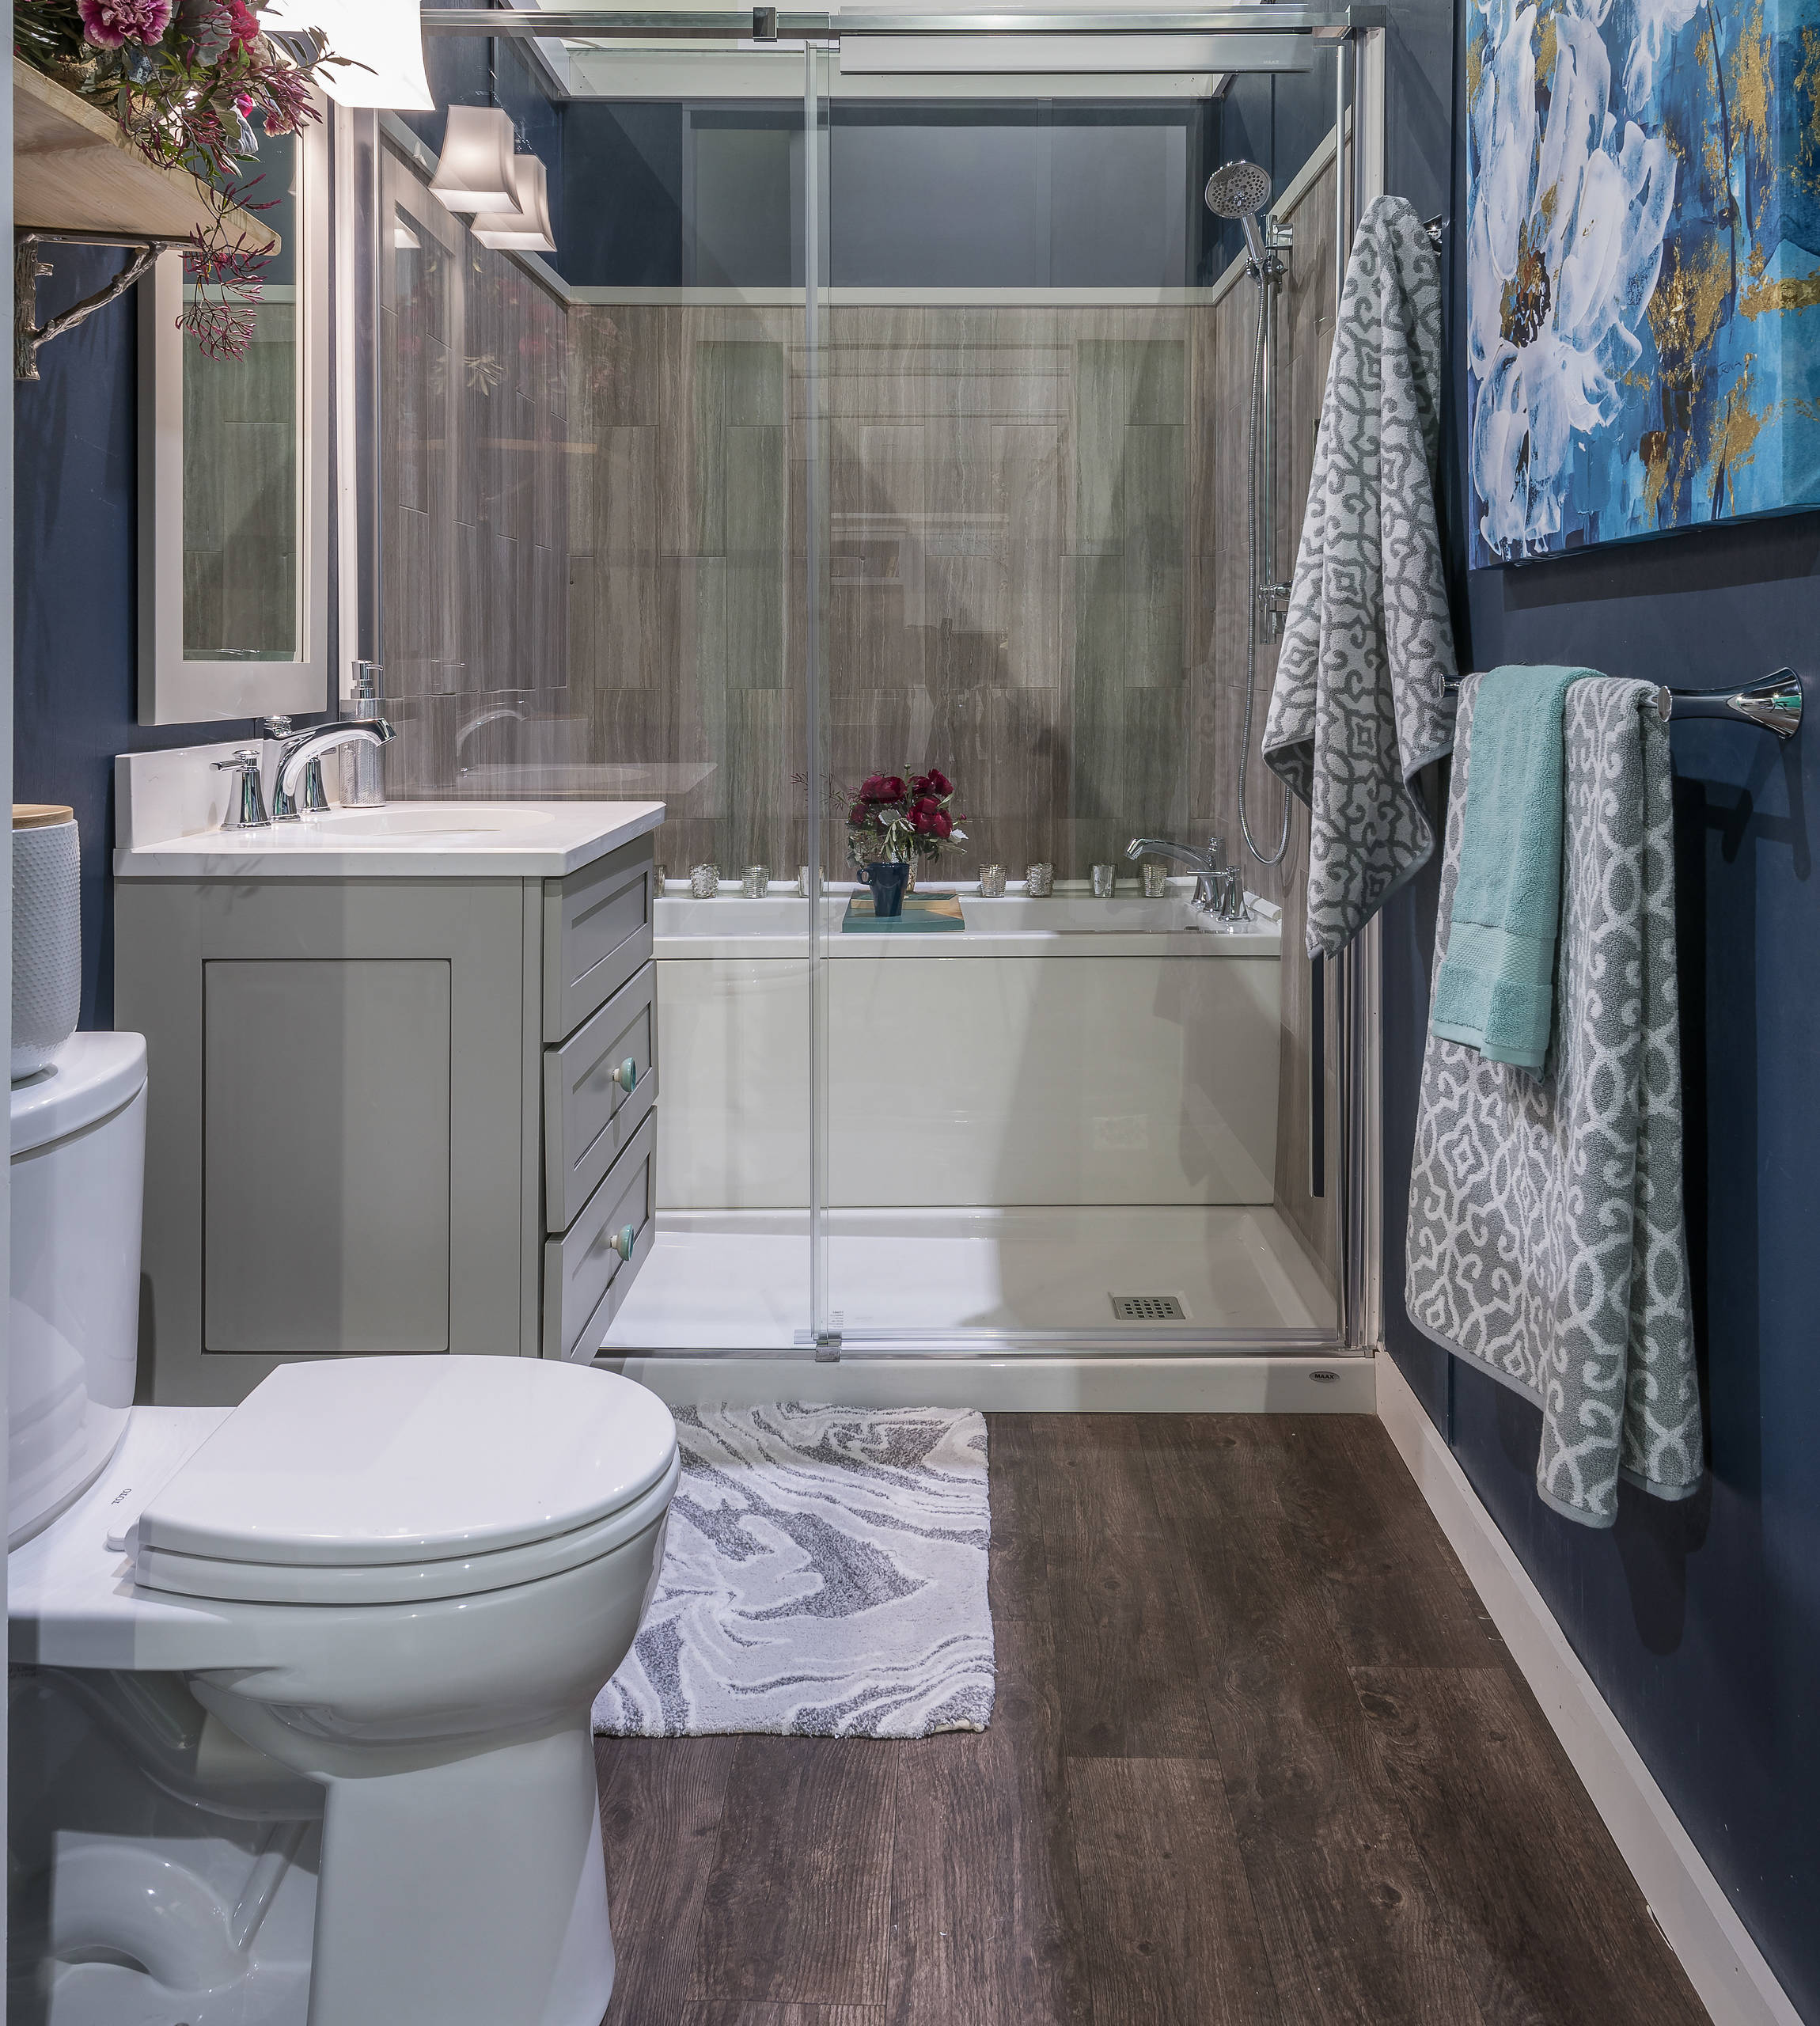 75 Beautiful Dark Wood Floor Bathroom With Gray Cabinets Pictures Ideas February 2021 Houzz